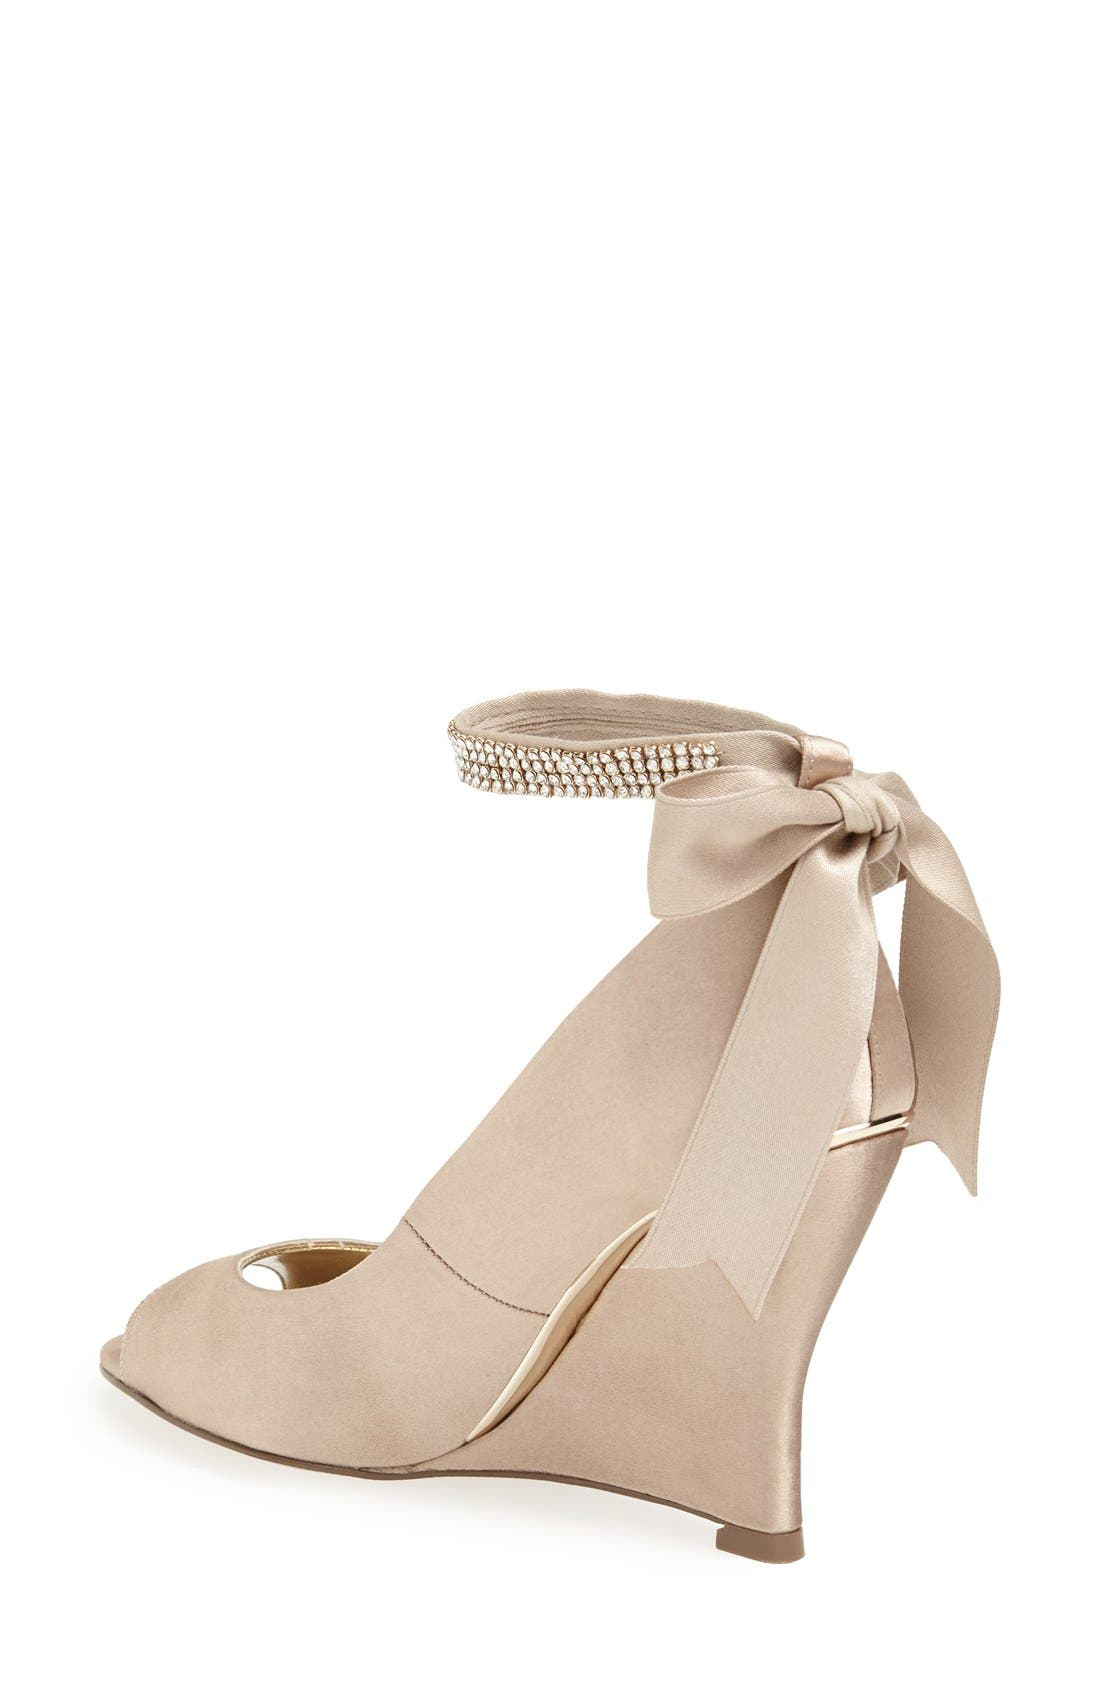 'Emma' Crystal Embellished Ankle Strap Pump,                             Alternate thumbnail 4, color,                             291